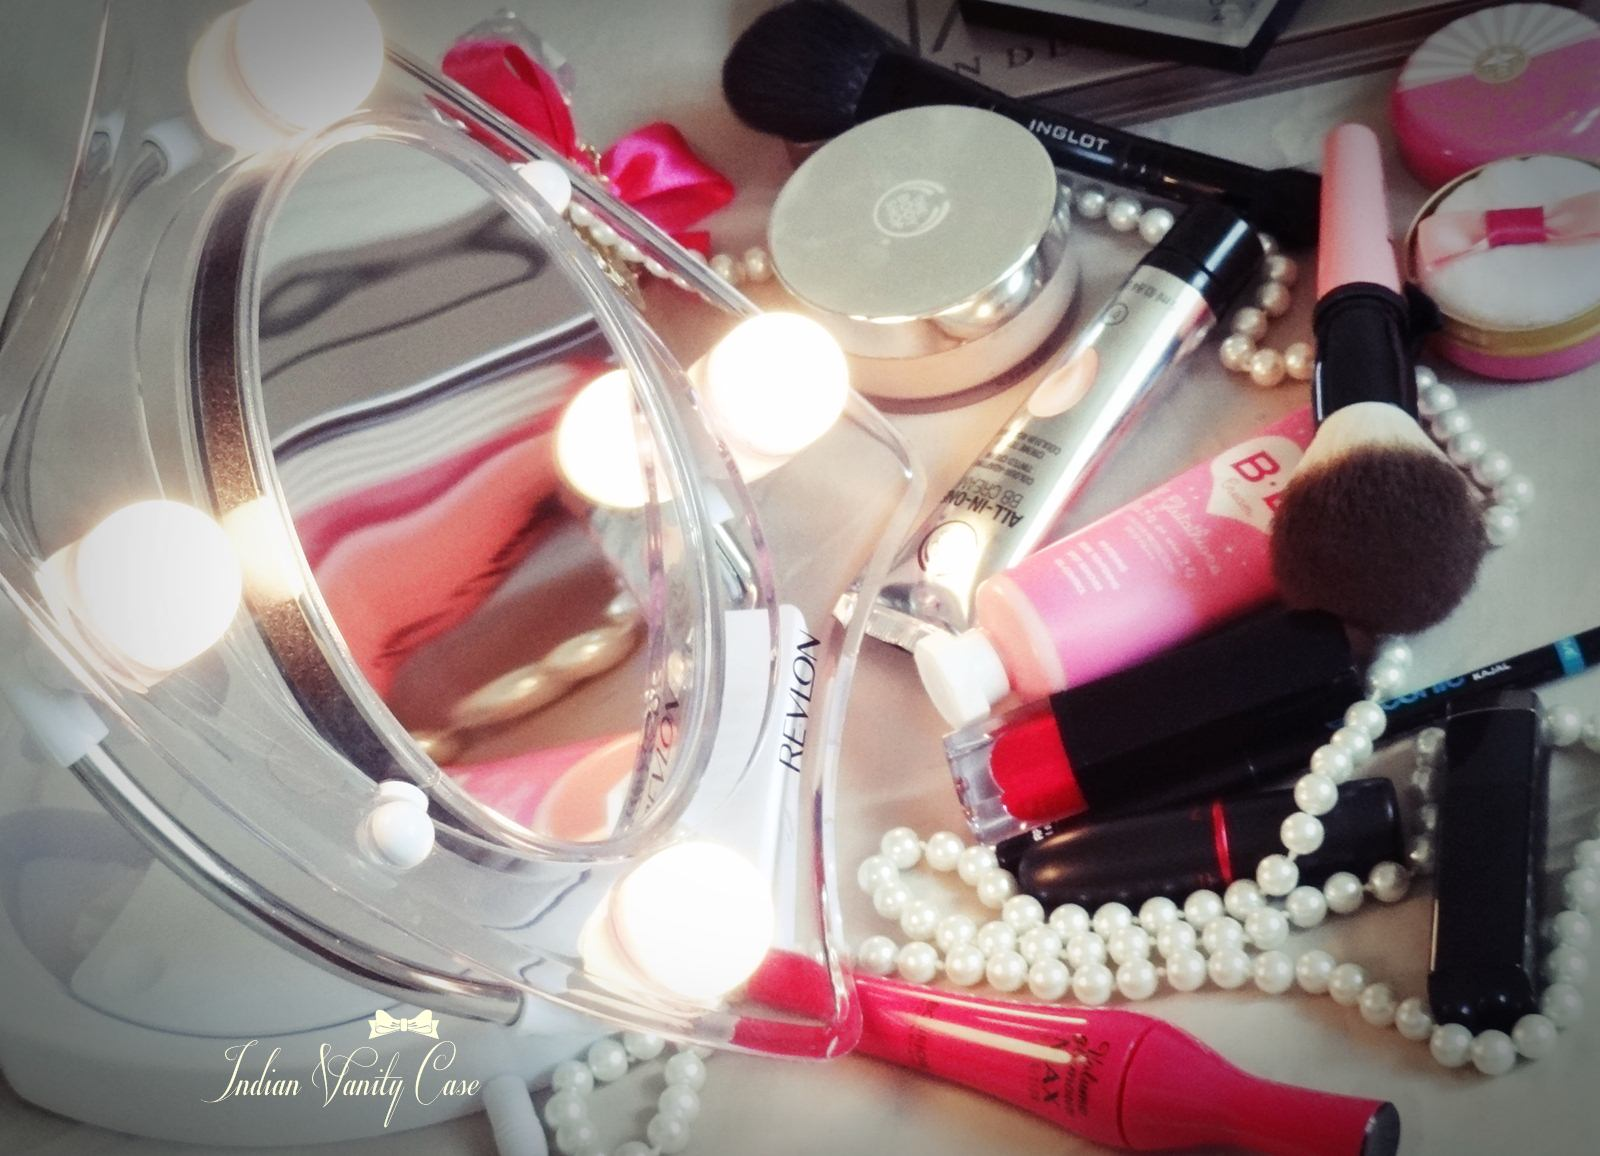 Indian Vanity Case: Revlon Hollywood Lighted Make-up Mirror ~ LOVE!